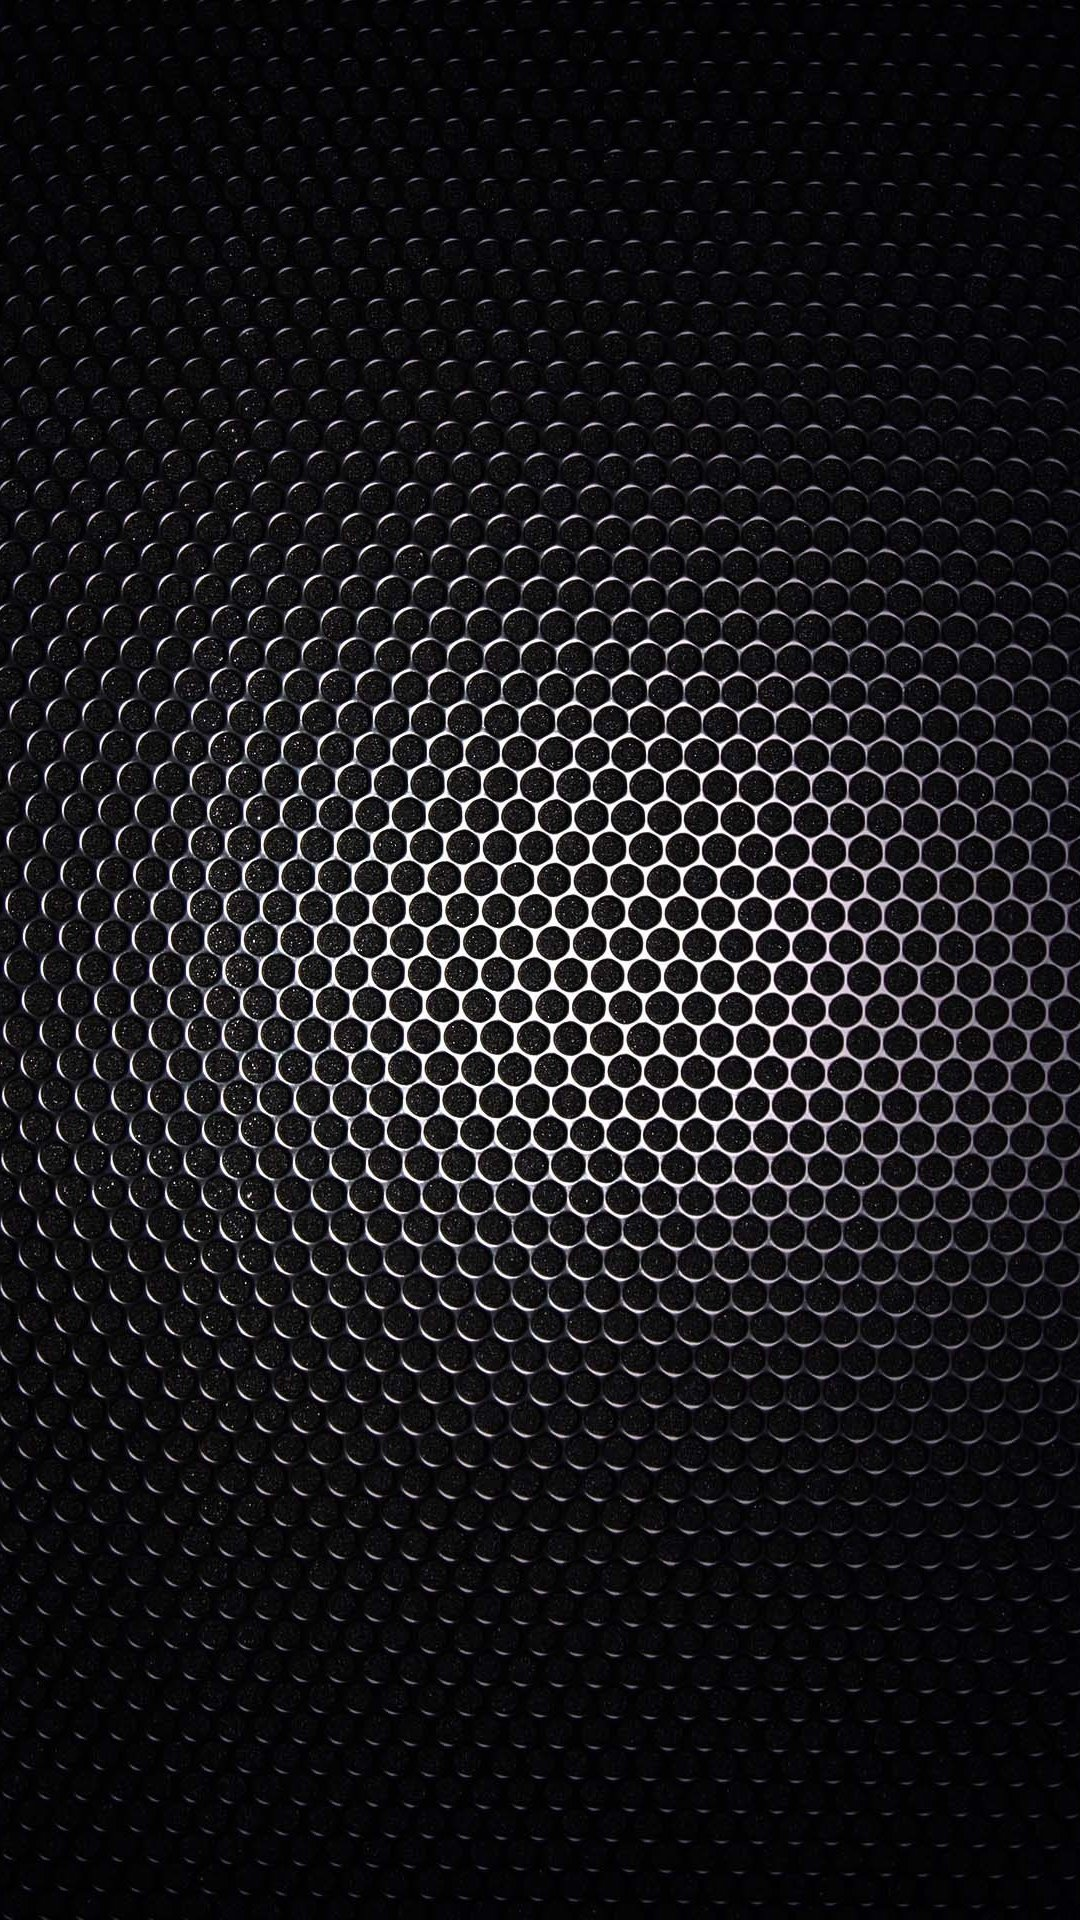 Galaxy S4 Wallpaper with Black metal grid design in 1080x1920 1080x1920